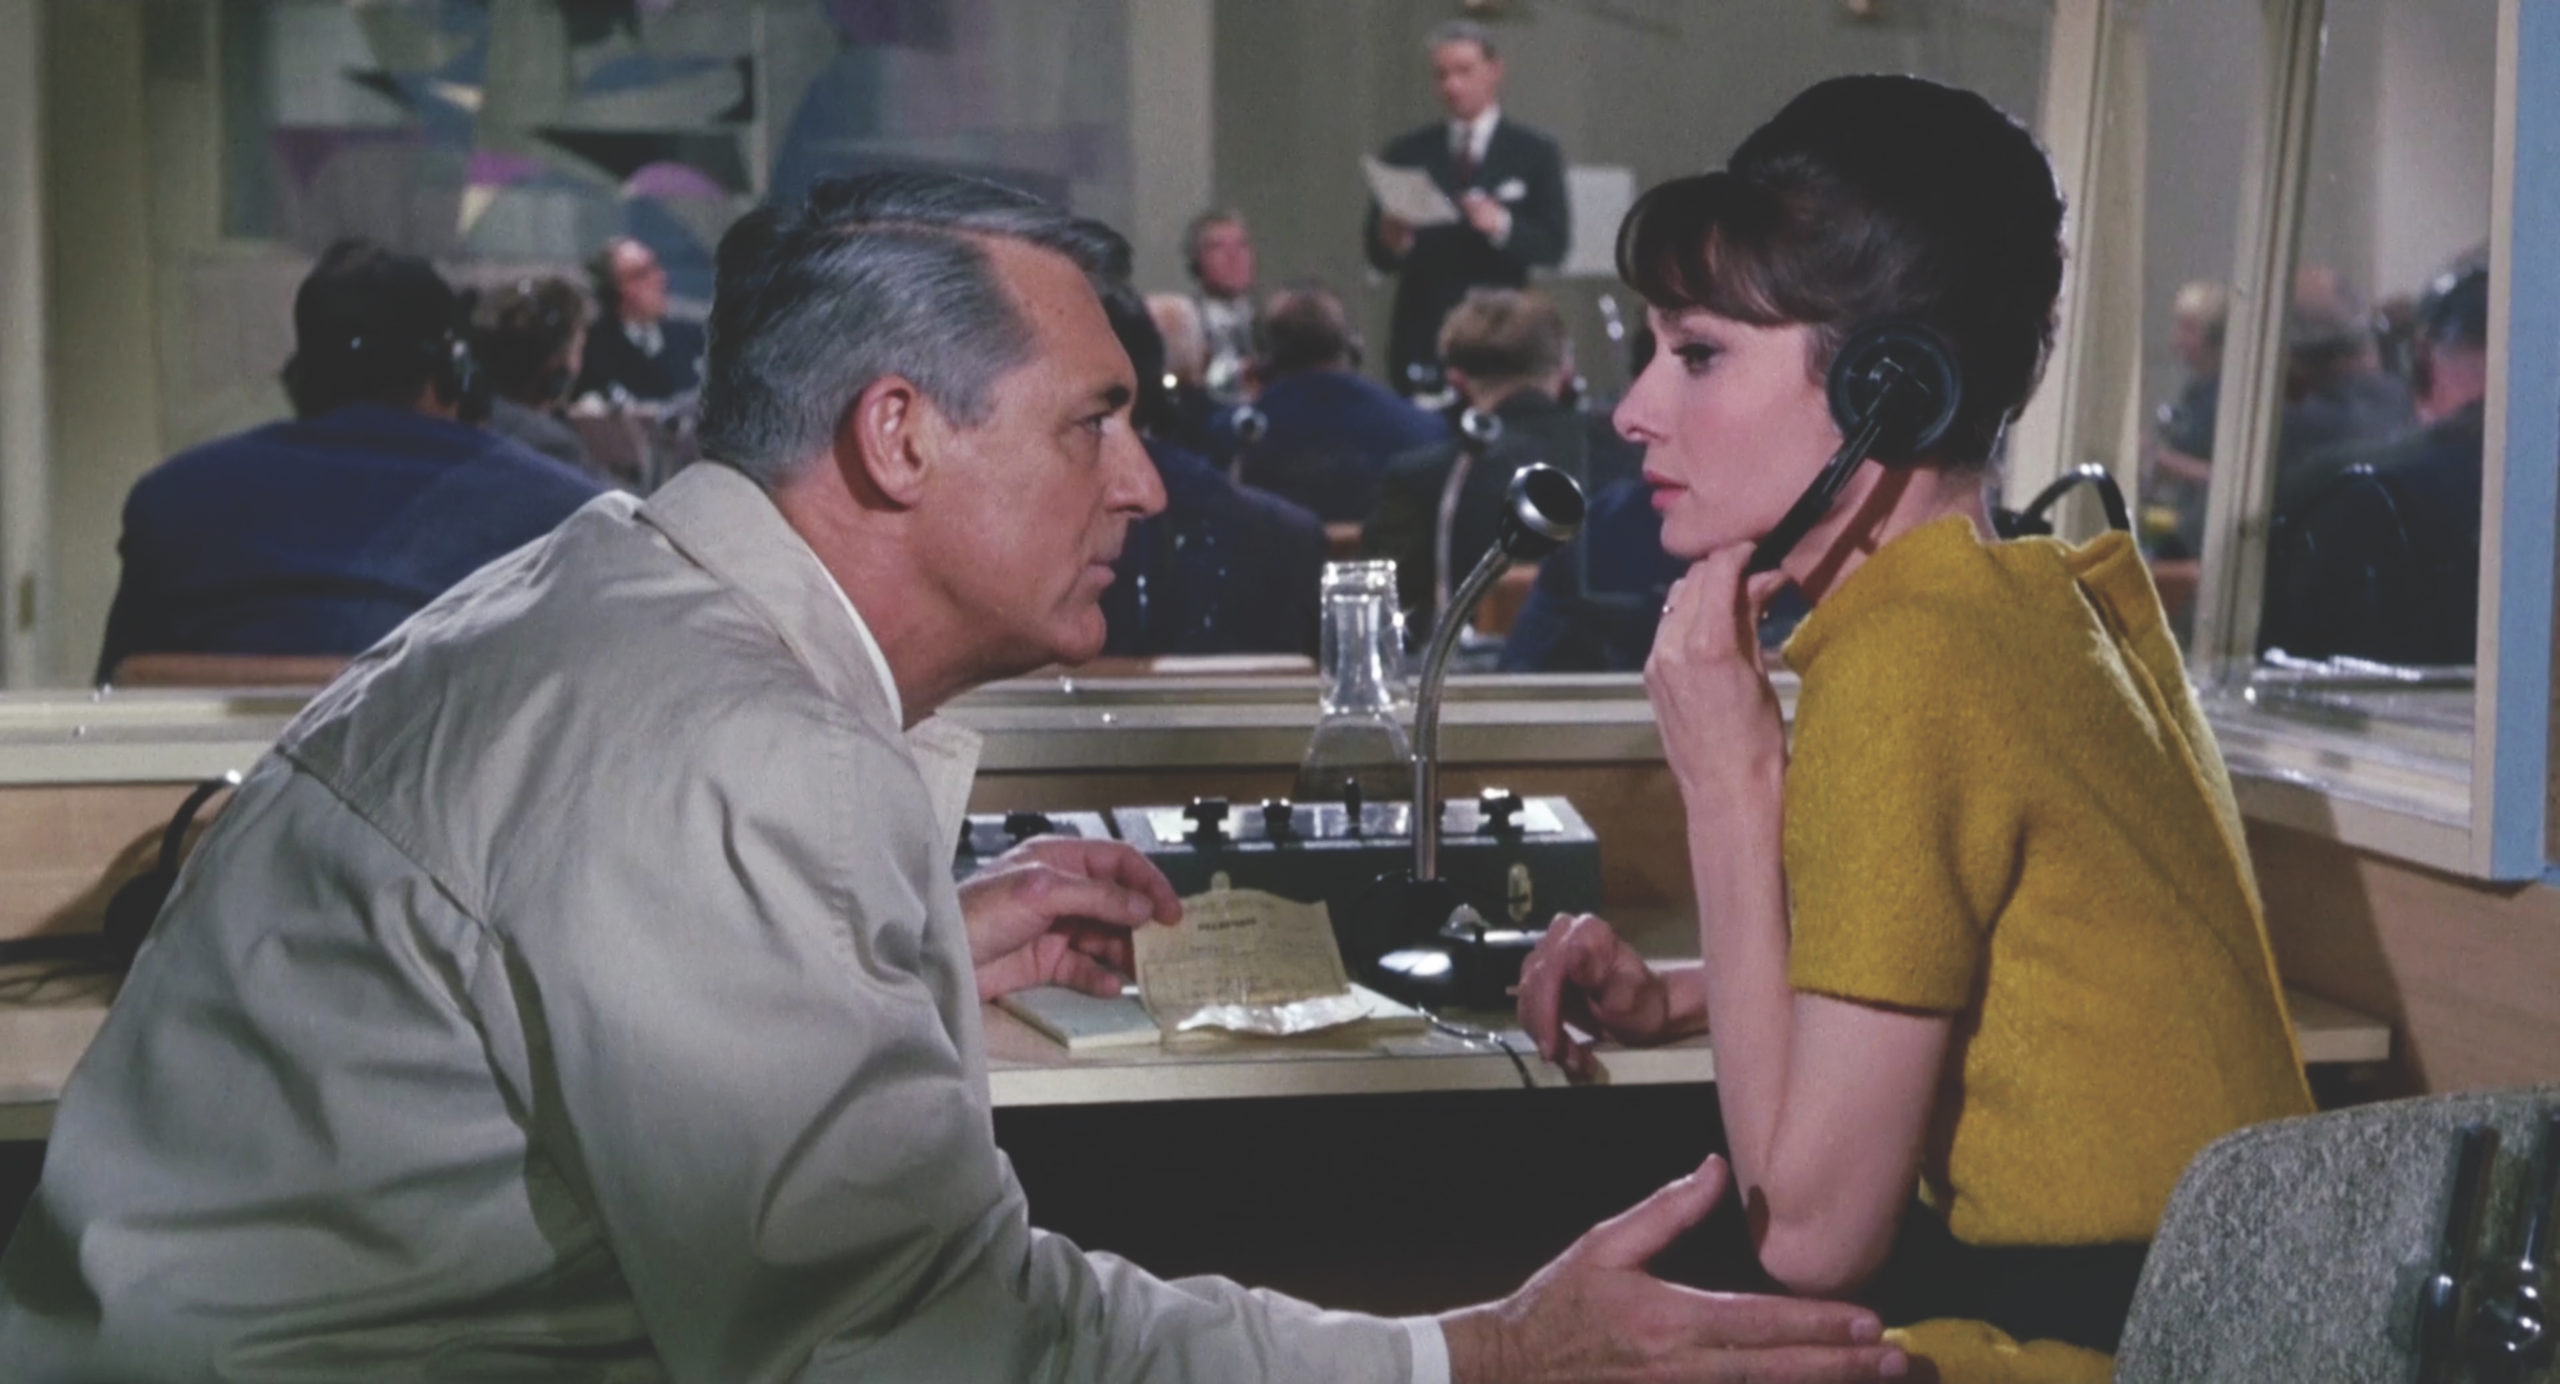 Charade is a rom-com starring Audrey Hepburn and Cary Grant. (Film still courtesy of CELINE)